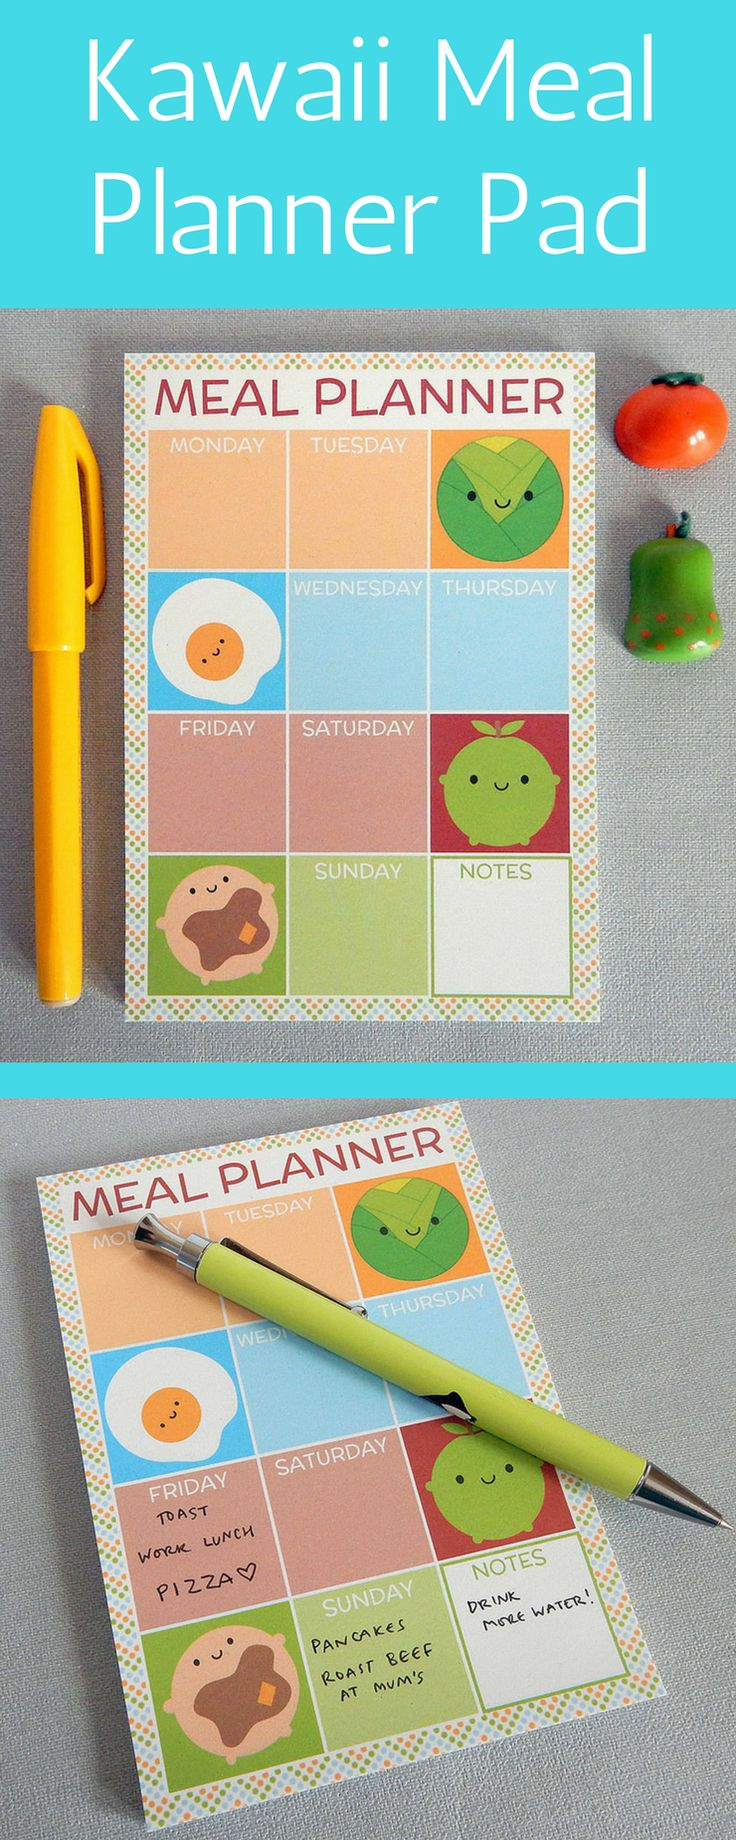 Organise your week's meals for a year with this cute magnetic notepad | Kawaii Meal Planner Pad |  Family meal planner for busy mums #planner #planneraddict #mealplanning #ad